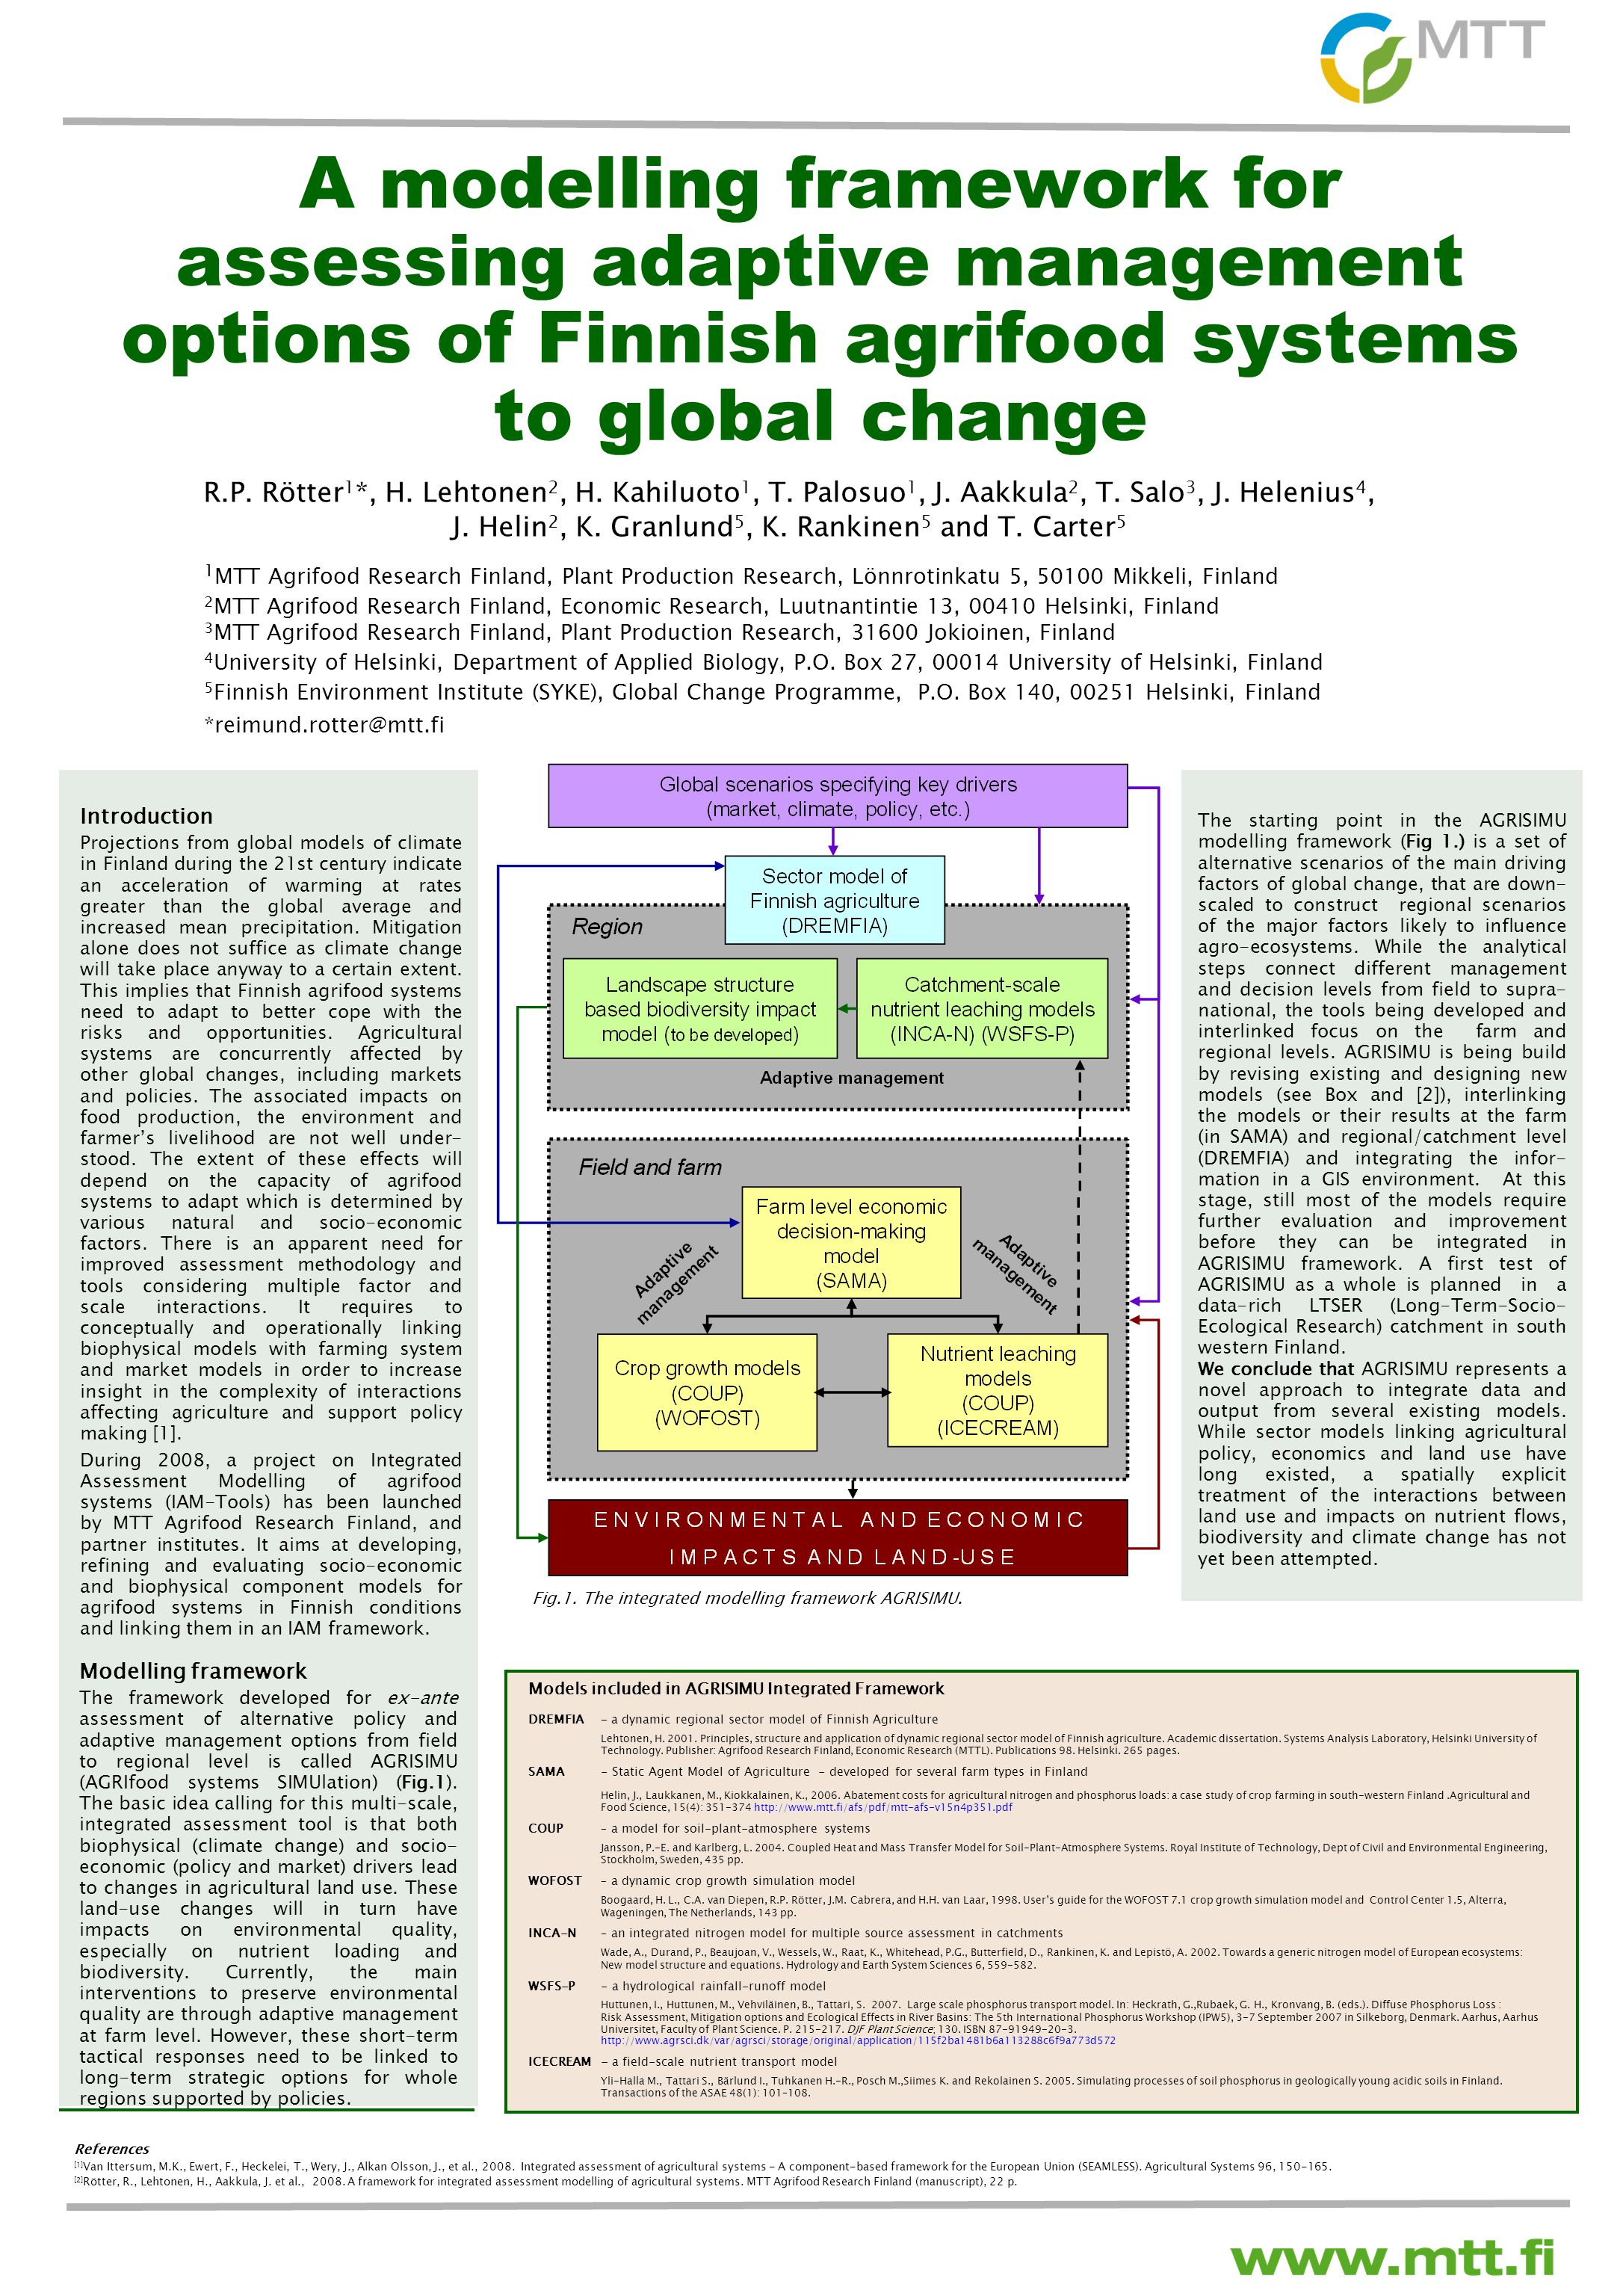 A modelling framework for assessing adaptive management options of Finnish agrifood systems to global change R.P.